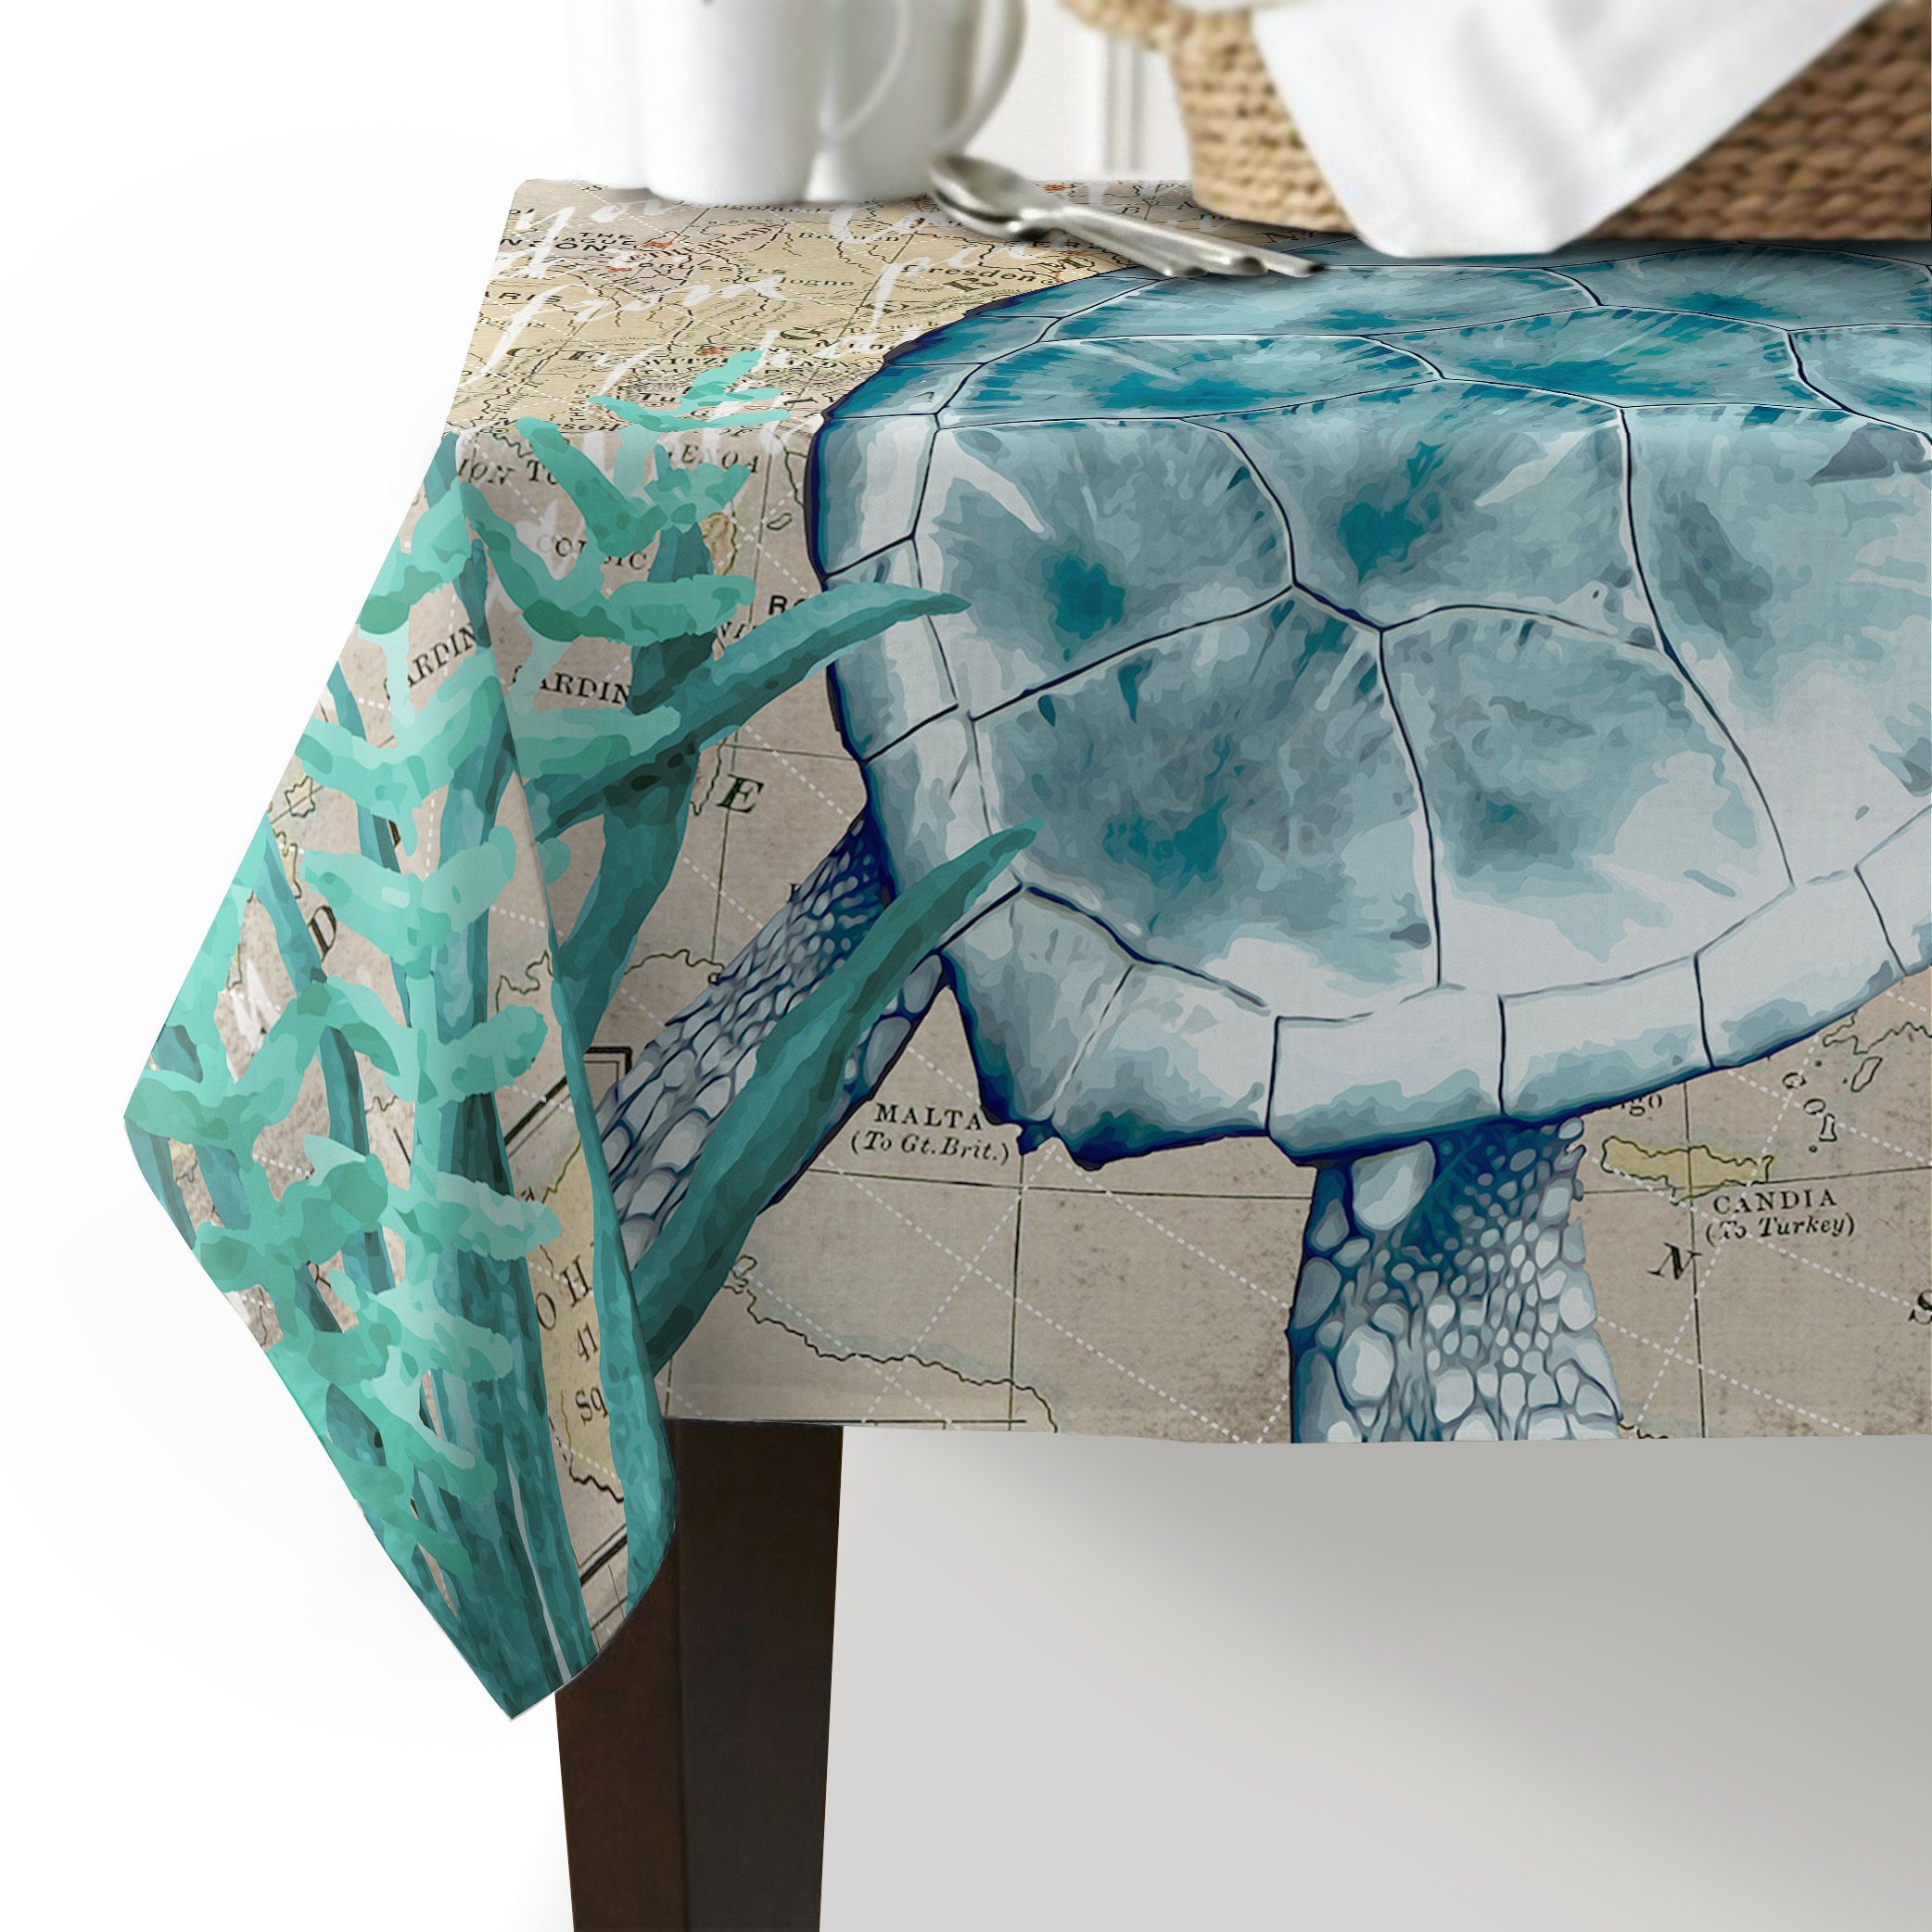 Cotton linen Tablecloth,Ocean Animals Sea Turtle Marine Life Table Cover - Wedding Restaurant Party Banquet Decoration 60x120inch